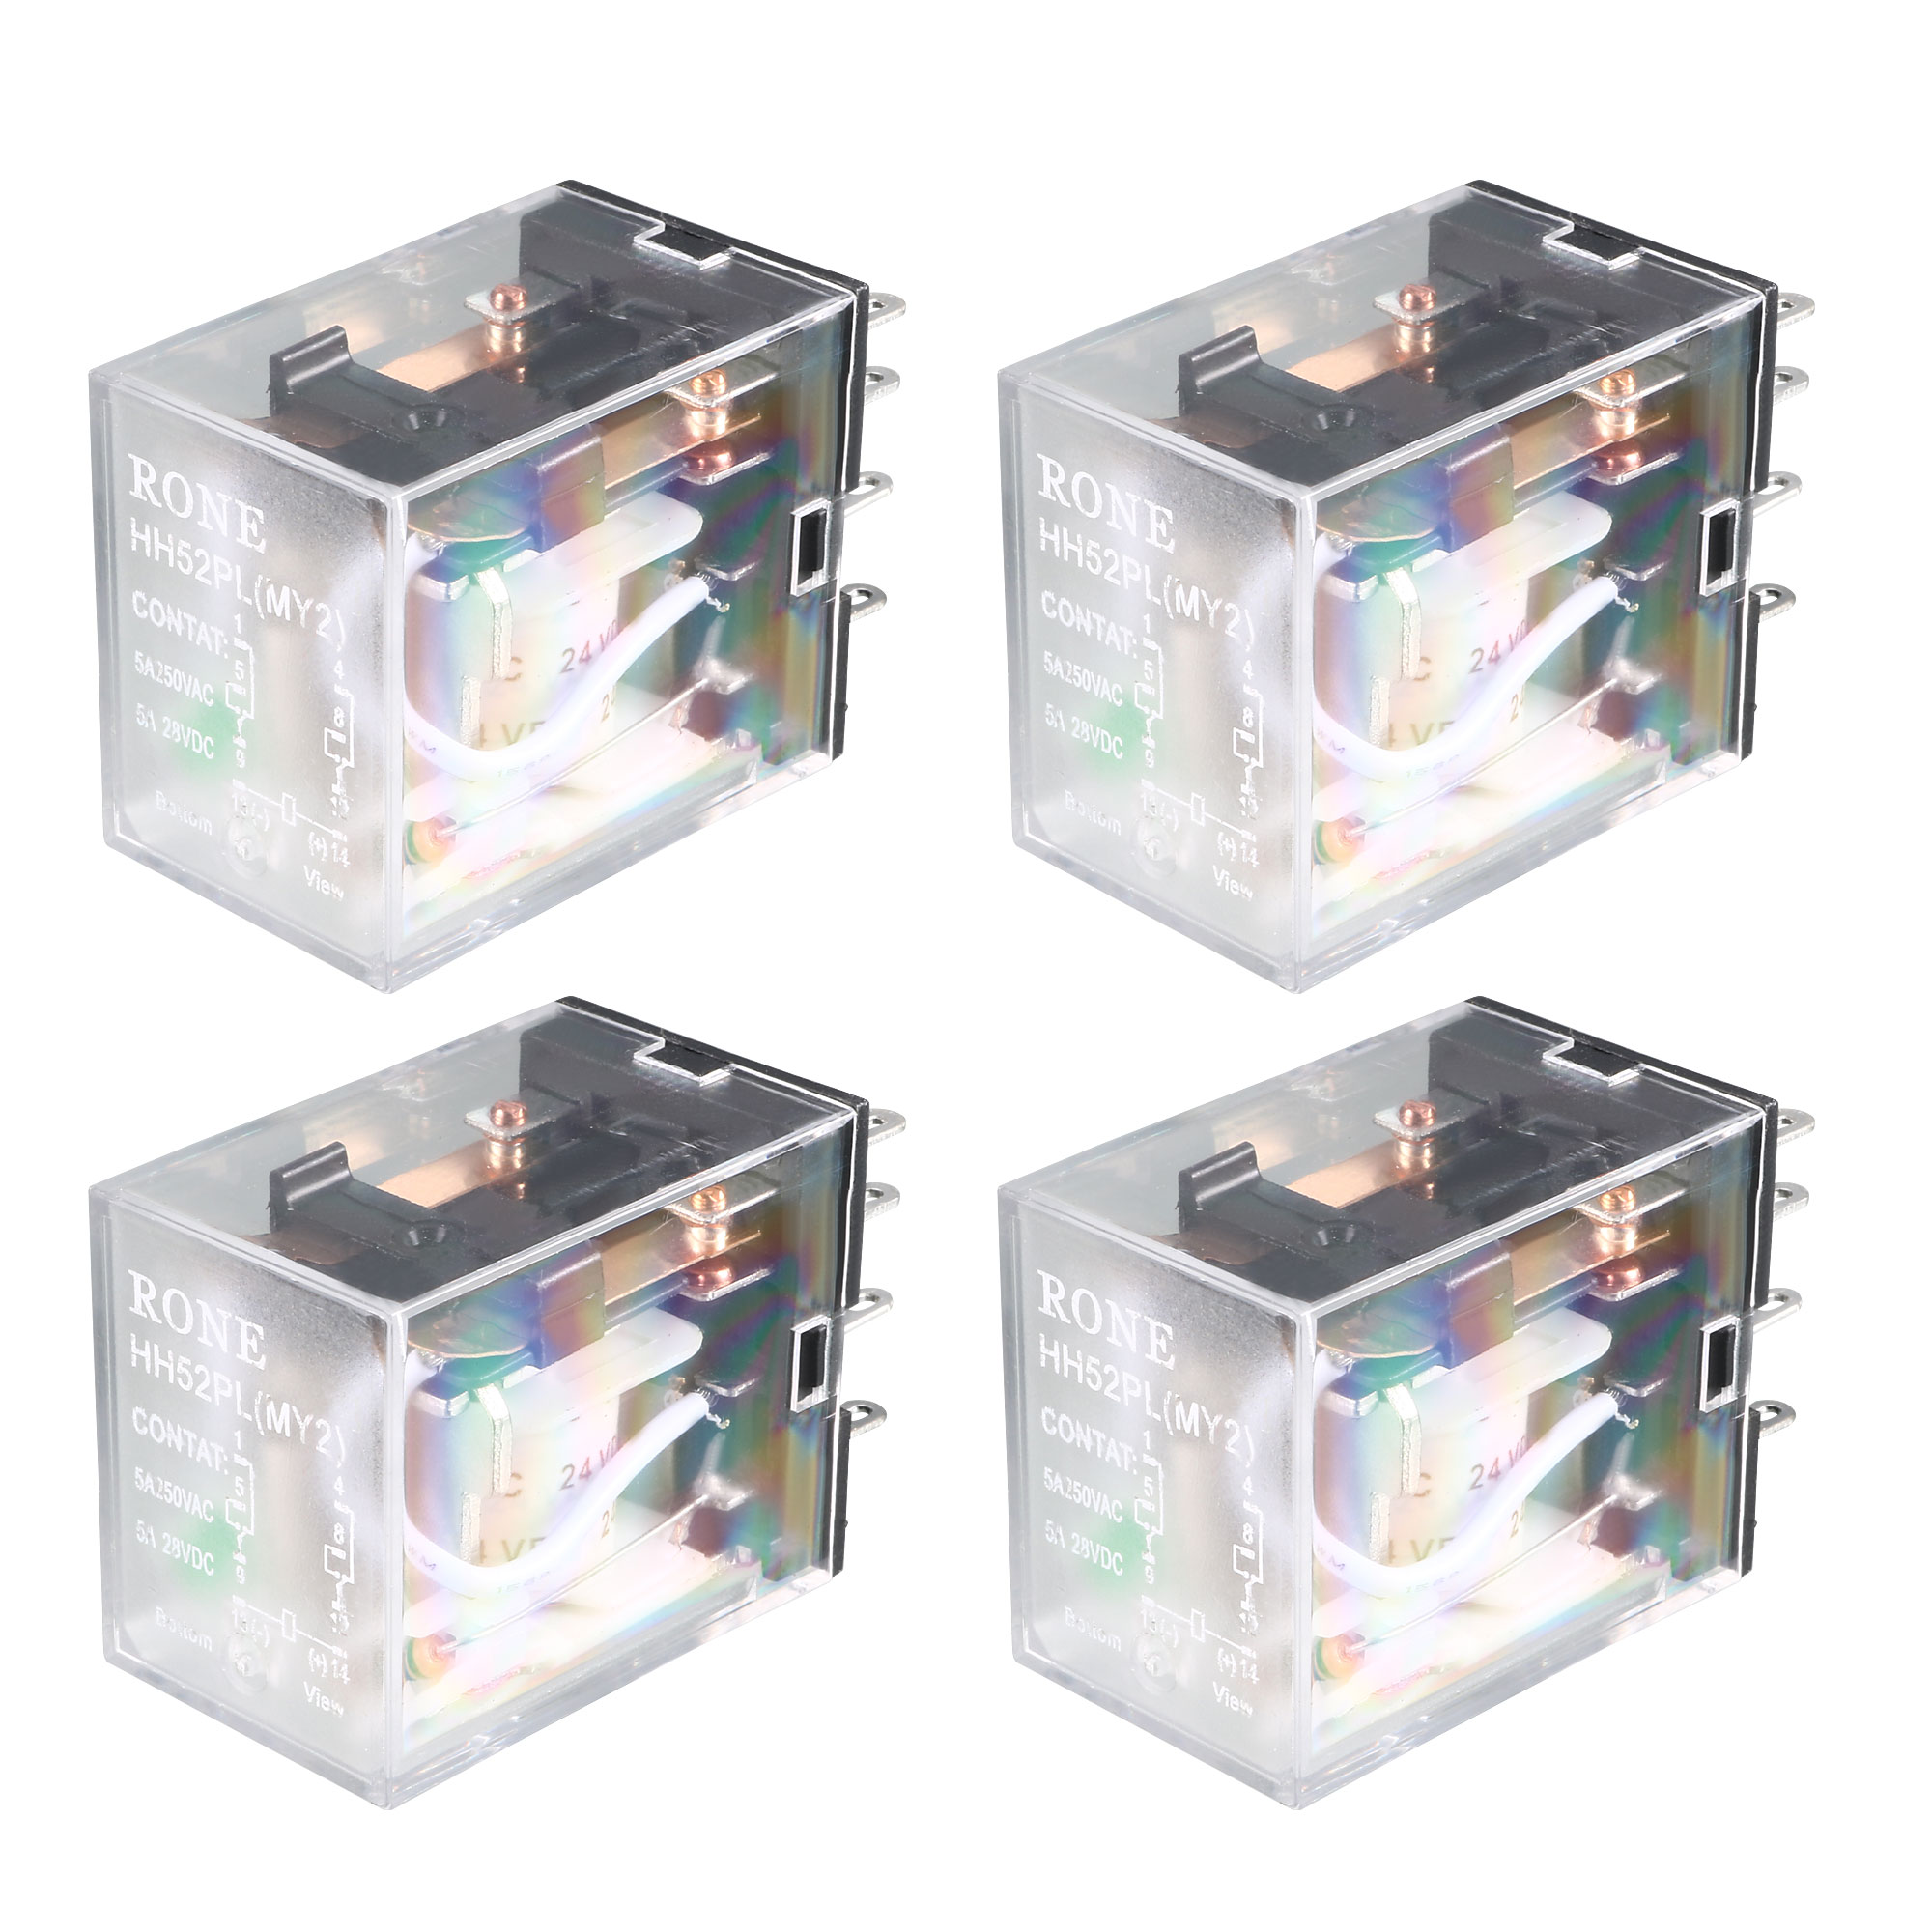 HH52P DC 24V Coil DPDT 2NO 2NC 8P General Purpose Power Relay 4 Pcs